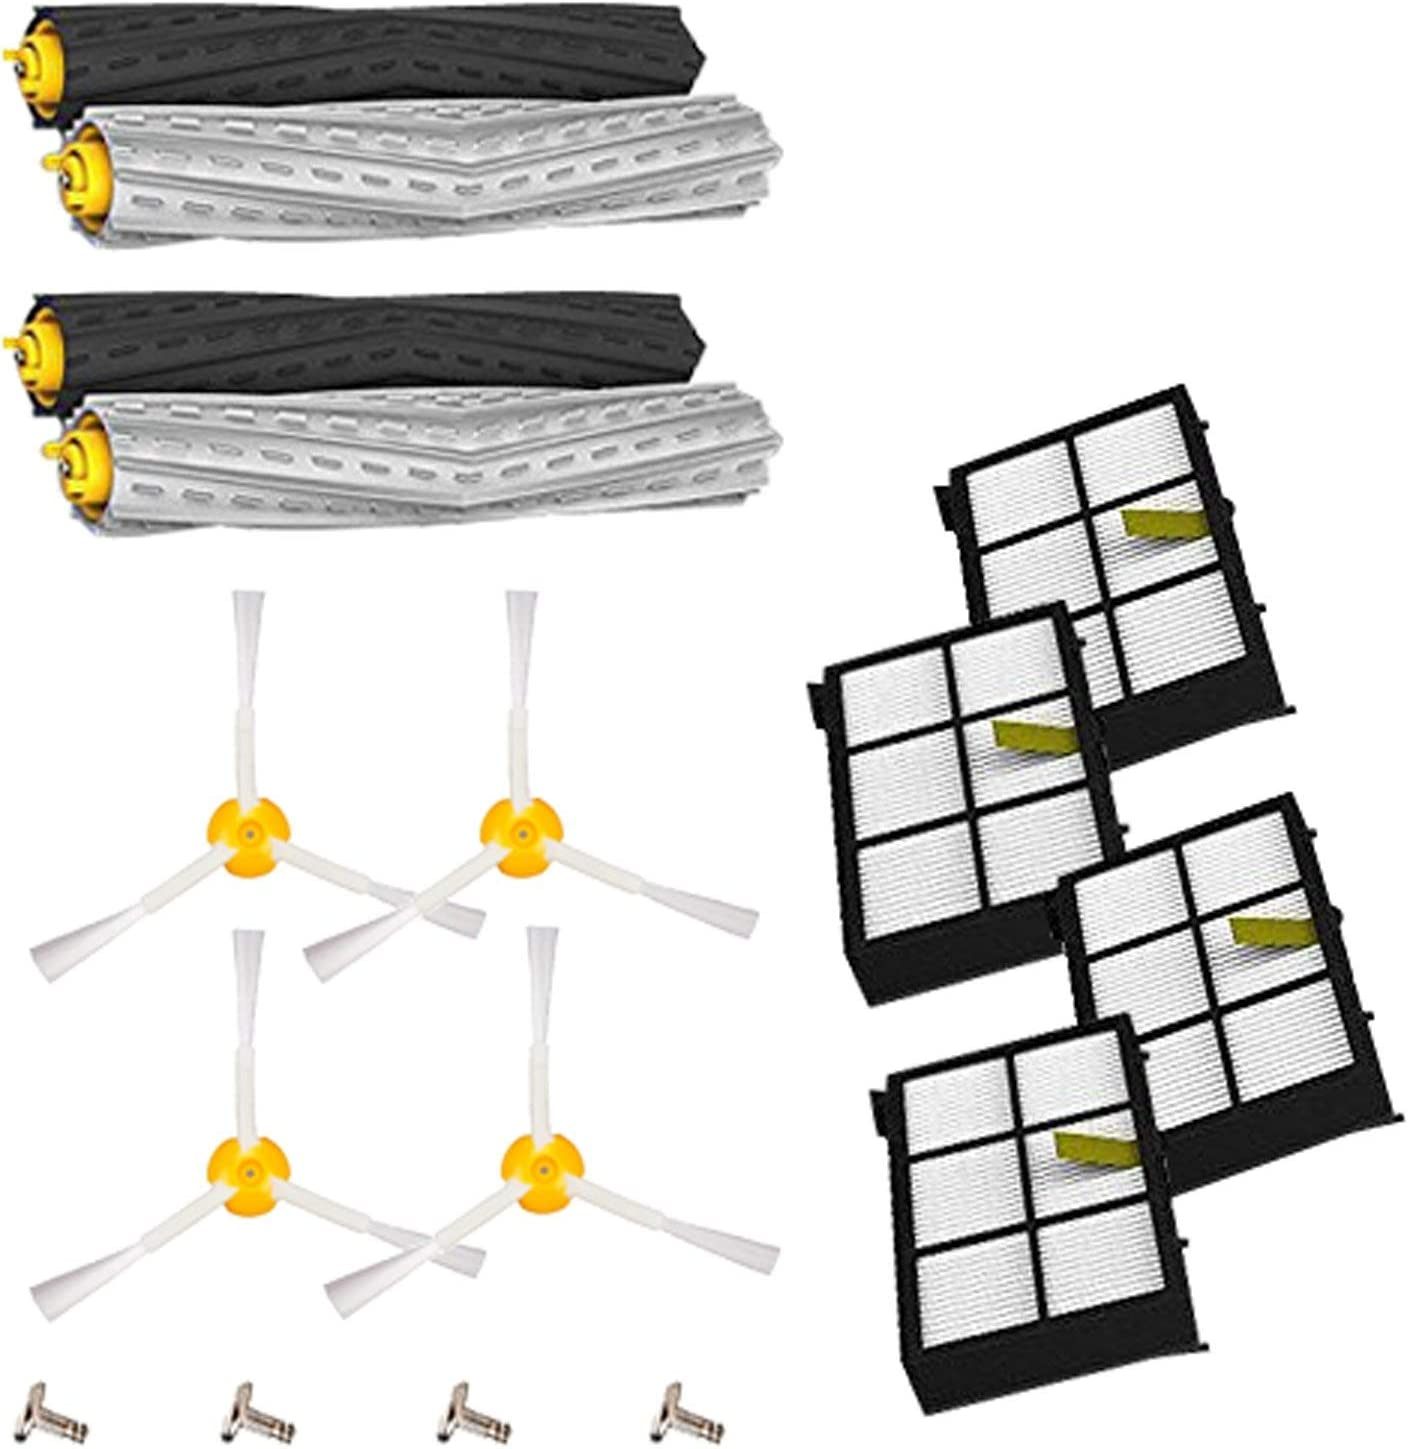 Replacement Kits For iRobot Roomba 800 900 Series Vacuum Cleaning Robots